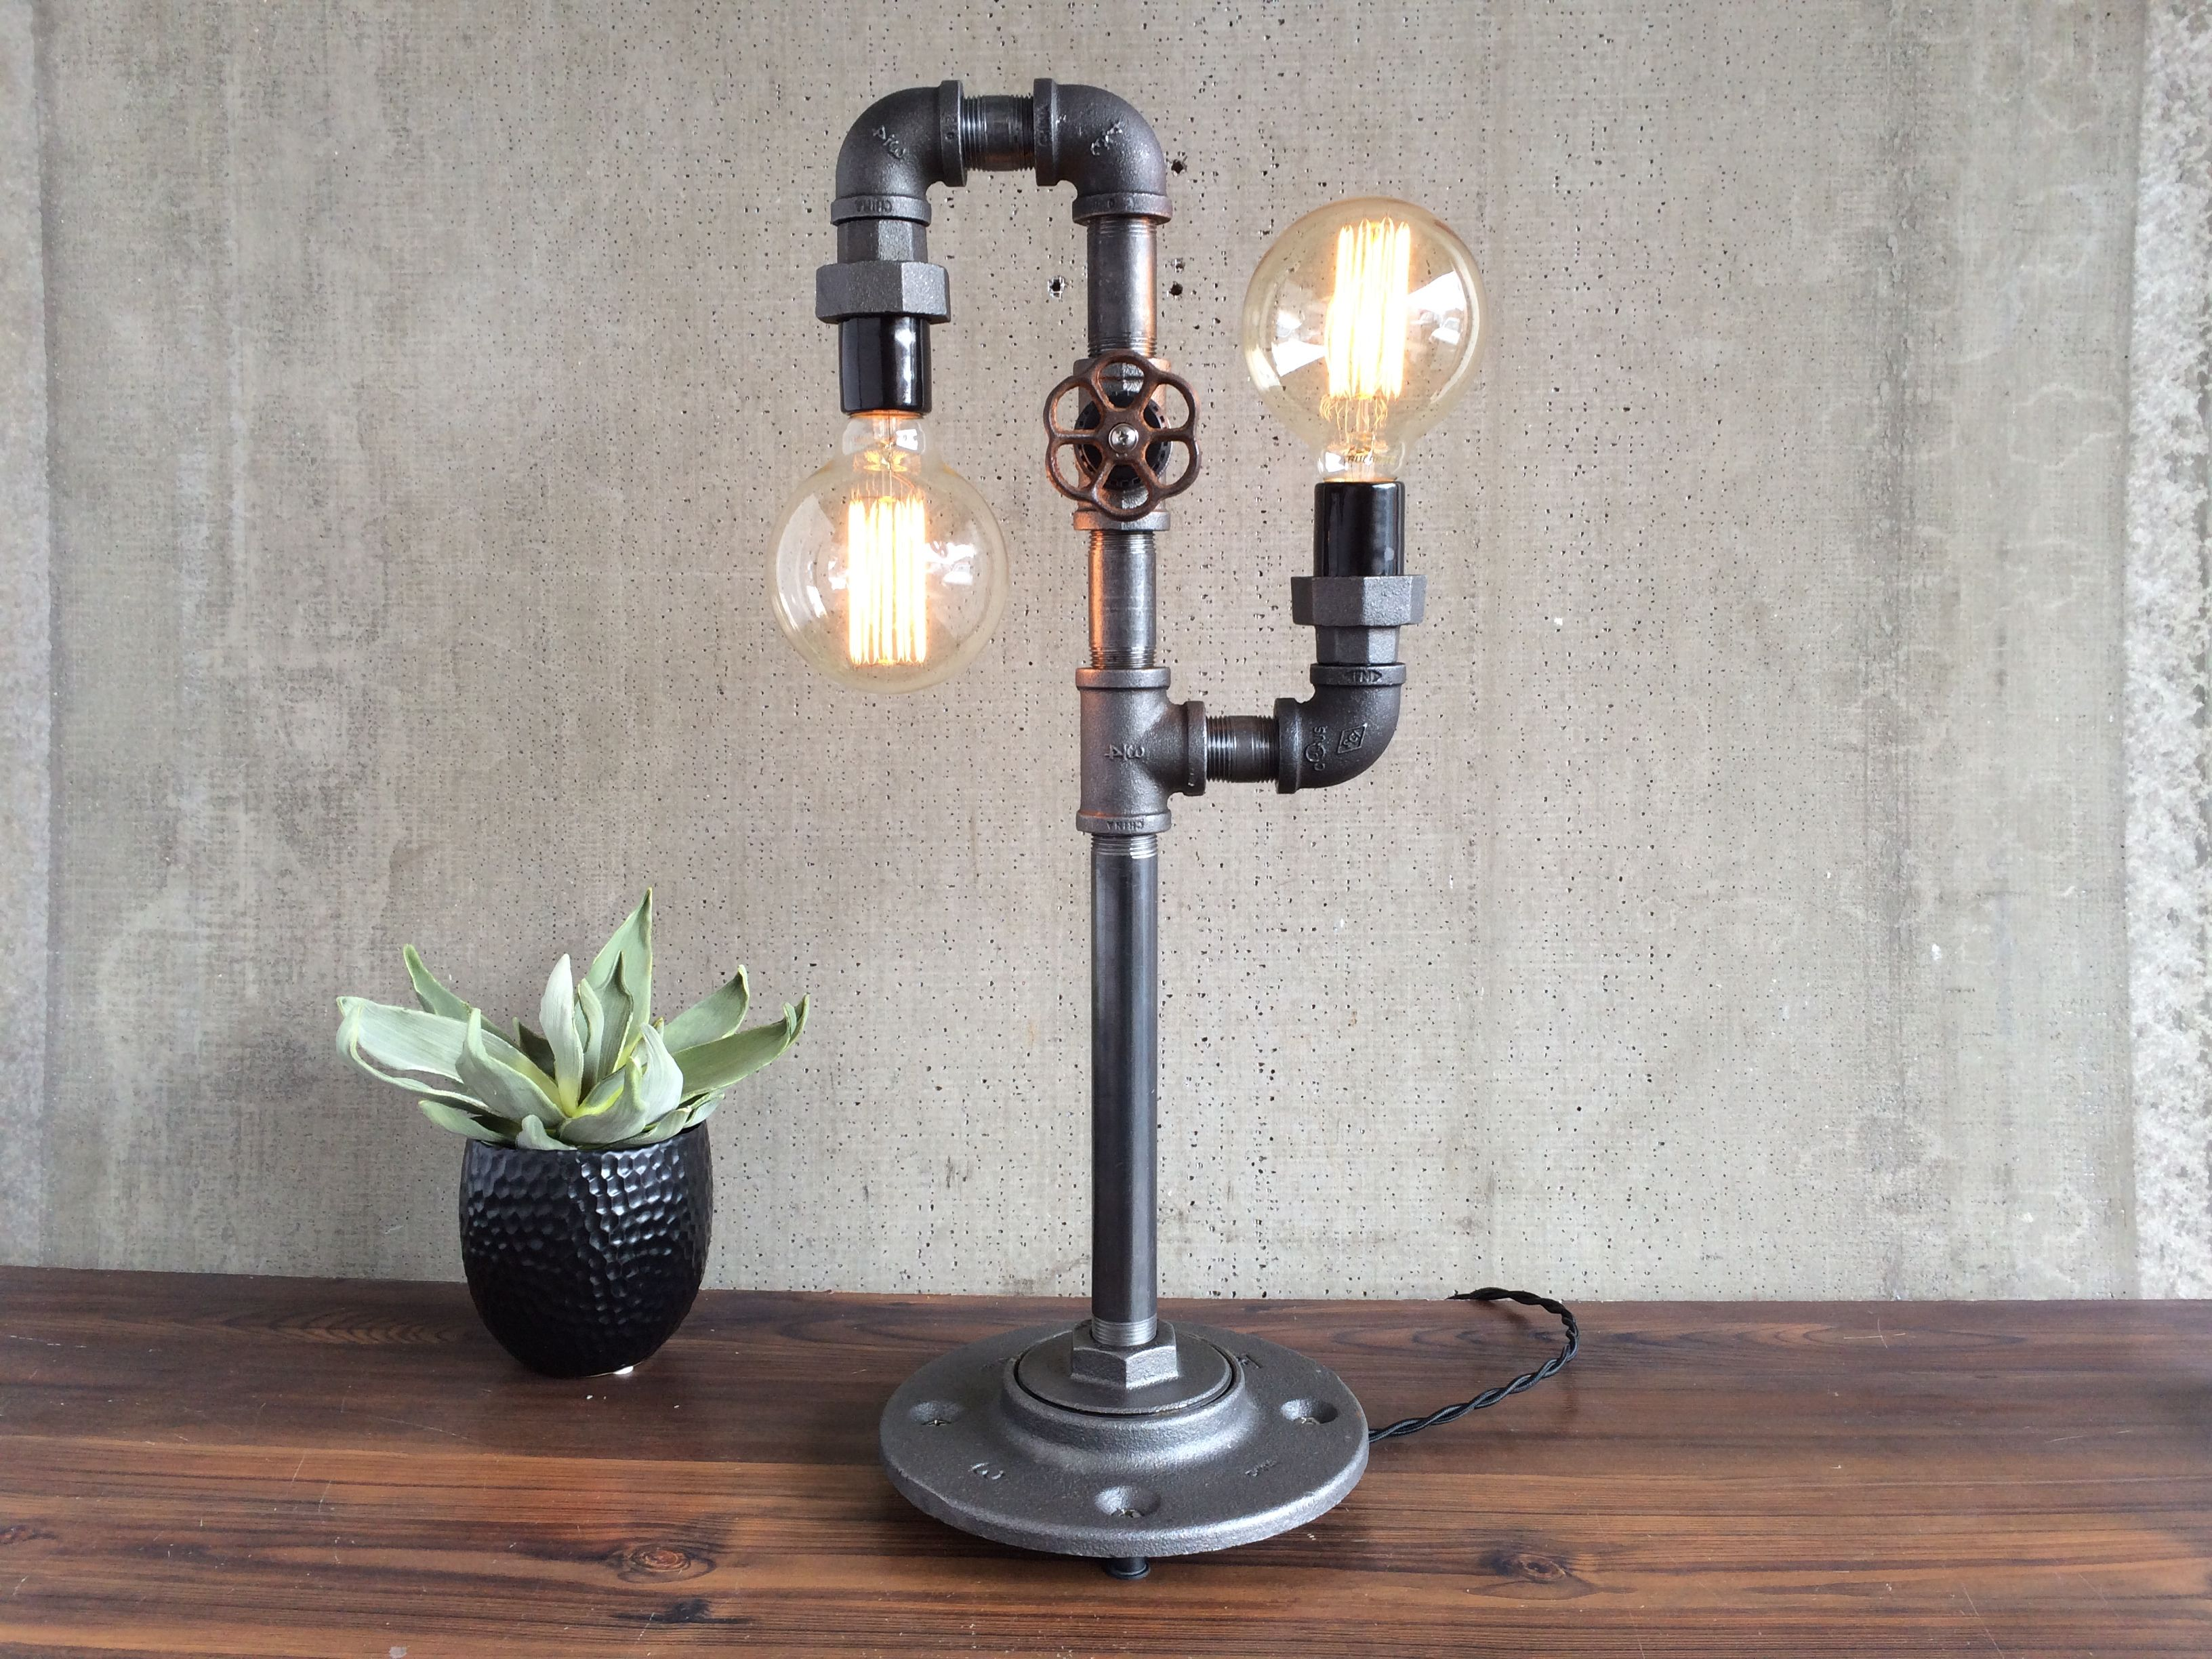 Industrial Decor Lighting Buy A Hand Crafted Industrial Edison Bulb Light Iron